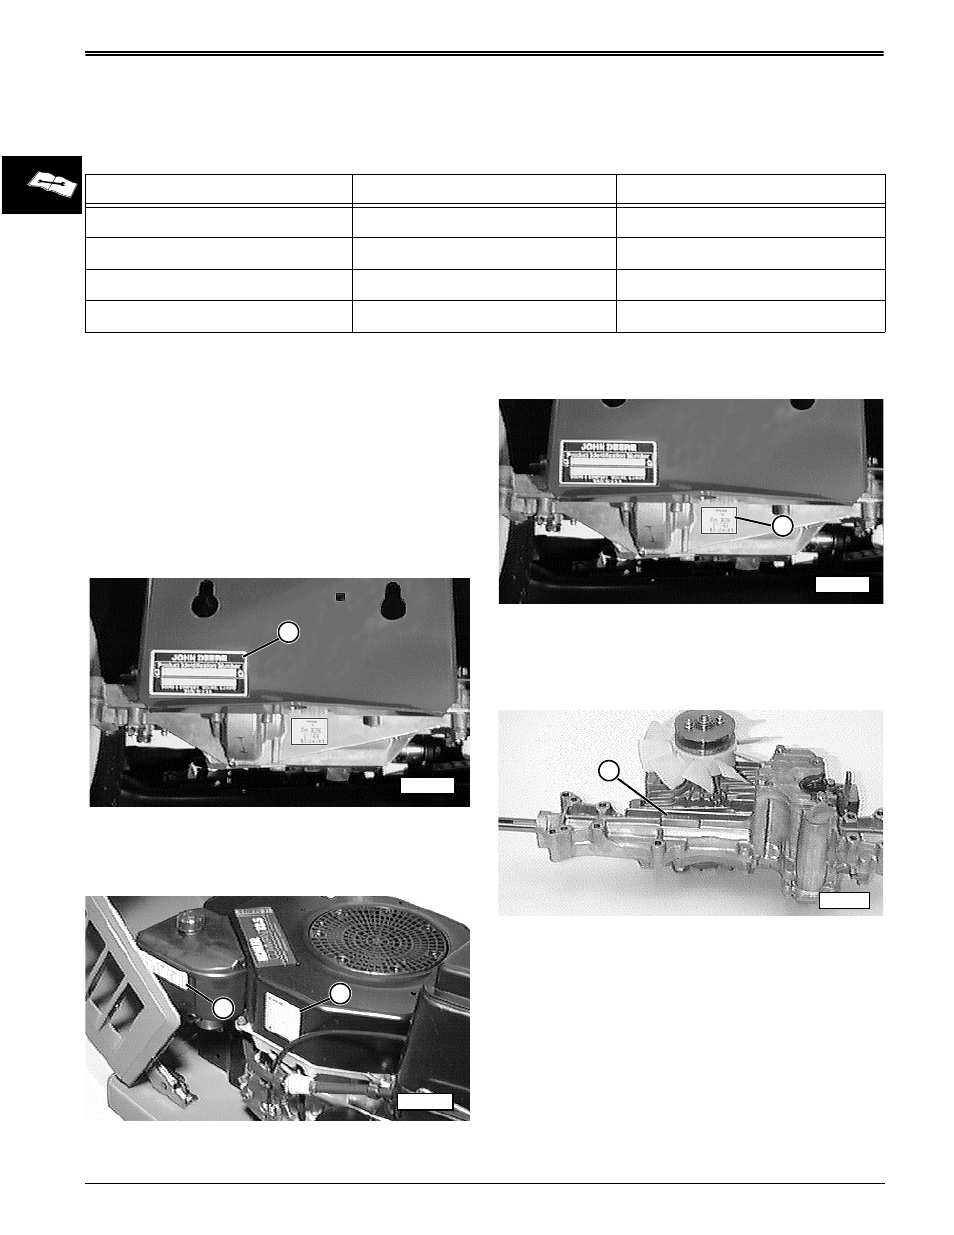 Serial identification number locations tractor identification serial identification number locations tractor identification number engine serial number john deere stx38 user manual page 32 314 sciox Images